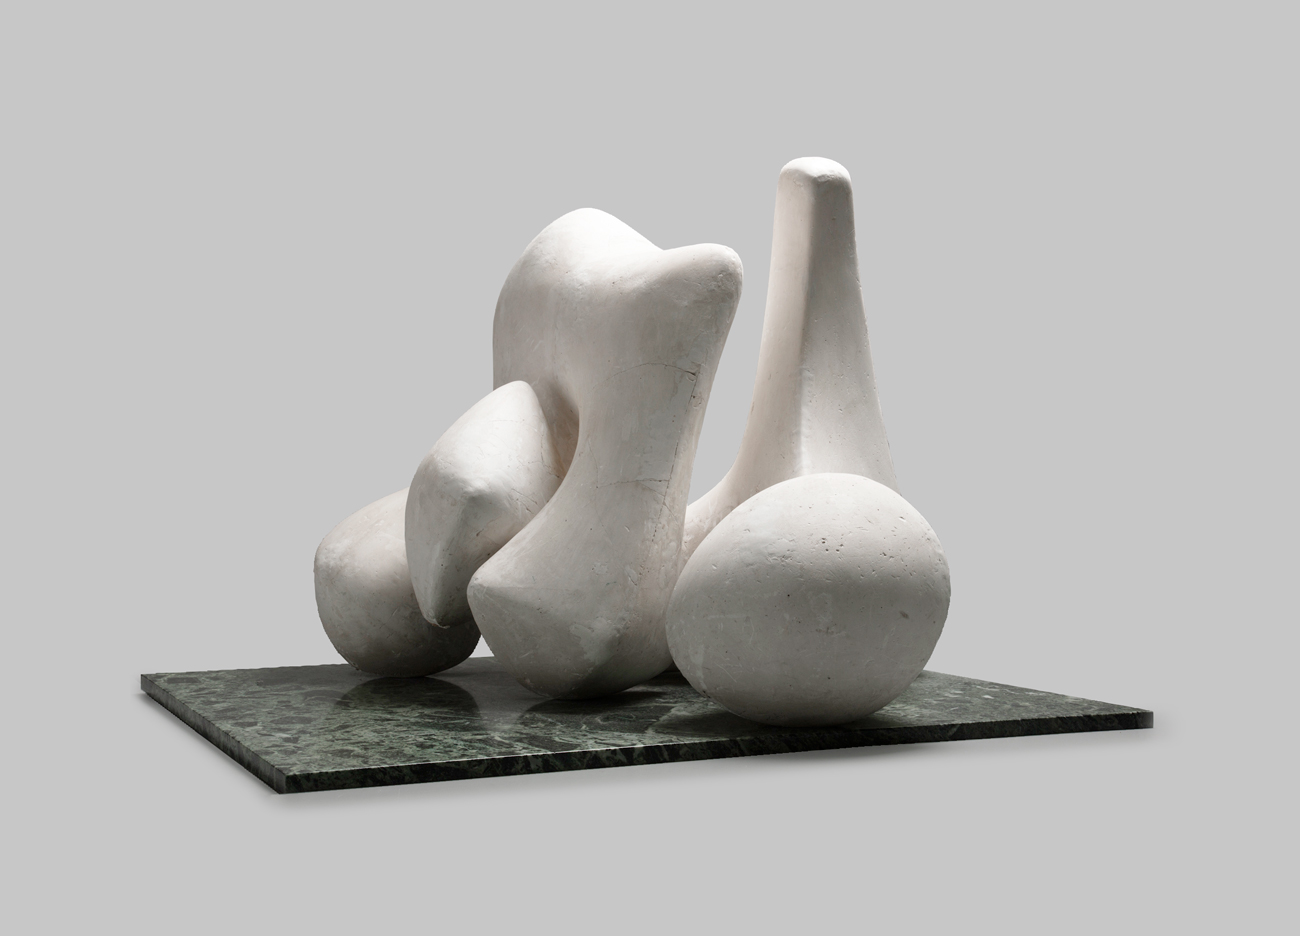 Henry Moore, <i>Two pieces carving interlocking</i>, ca. 1698